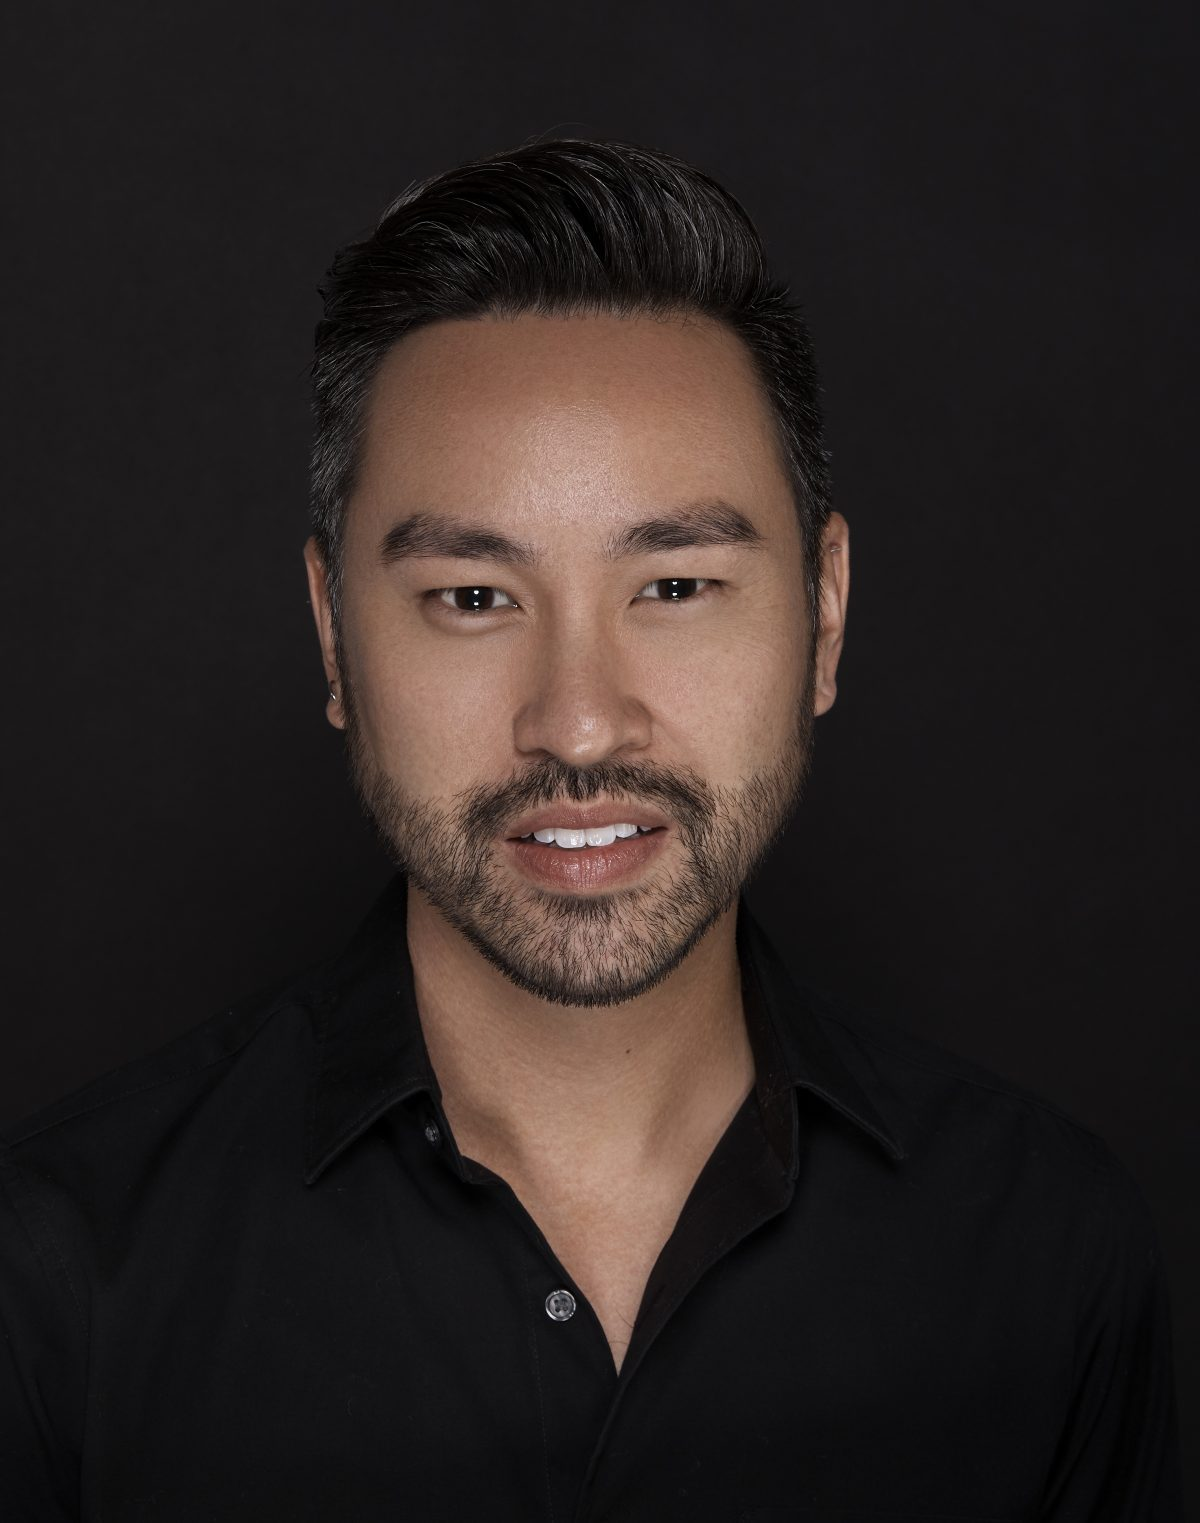 Marc Reagan, Director of Artistry & Education for Hourglass Cosmetics